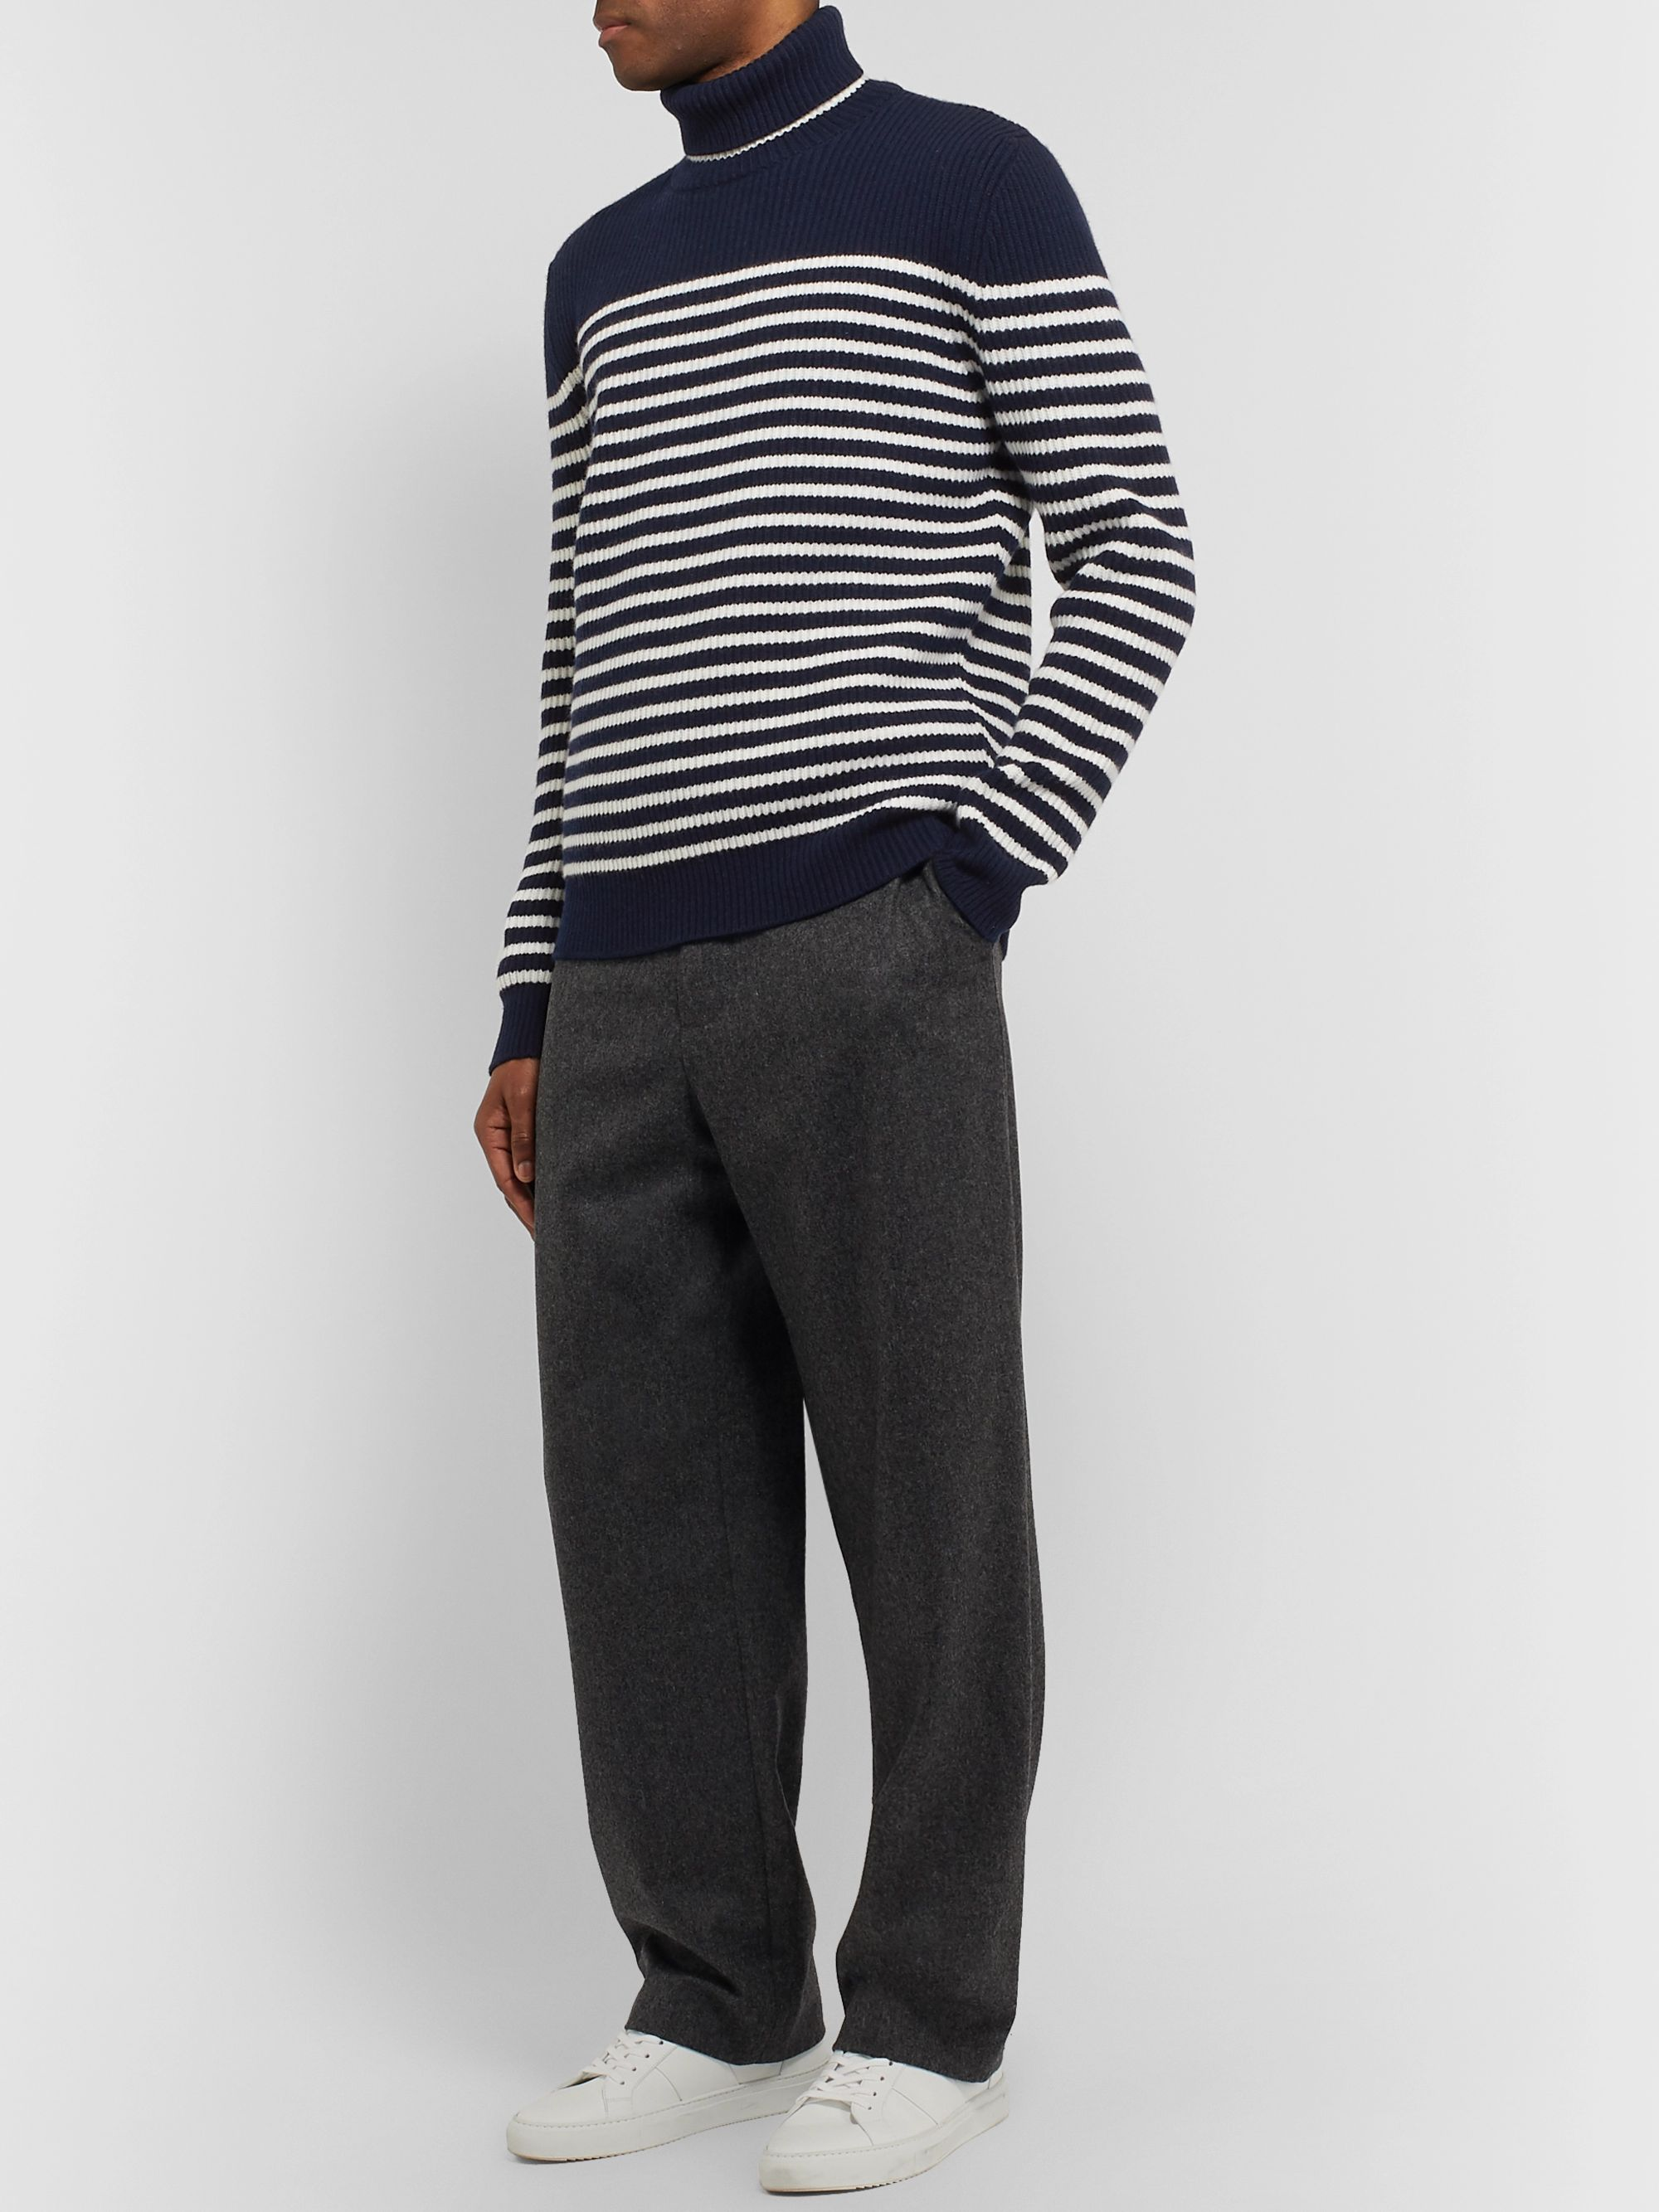 Mr P. Striped Virgin Wool Rollneck Sweater